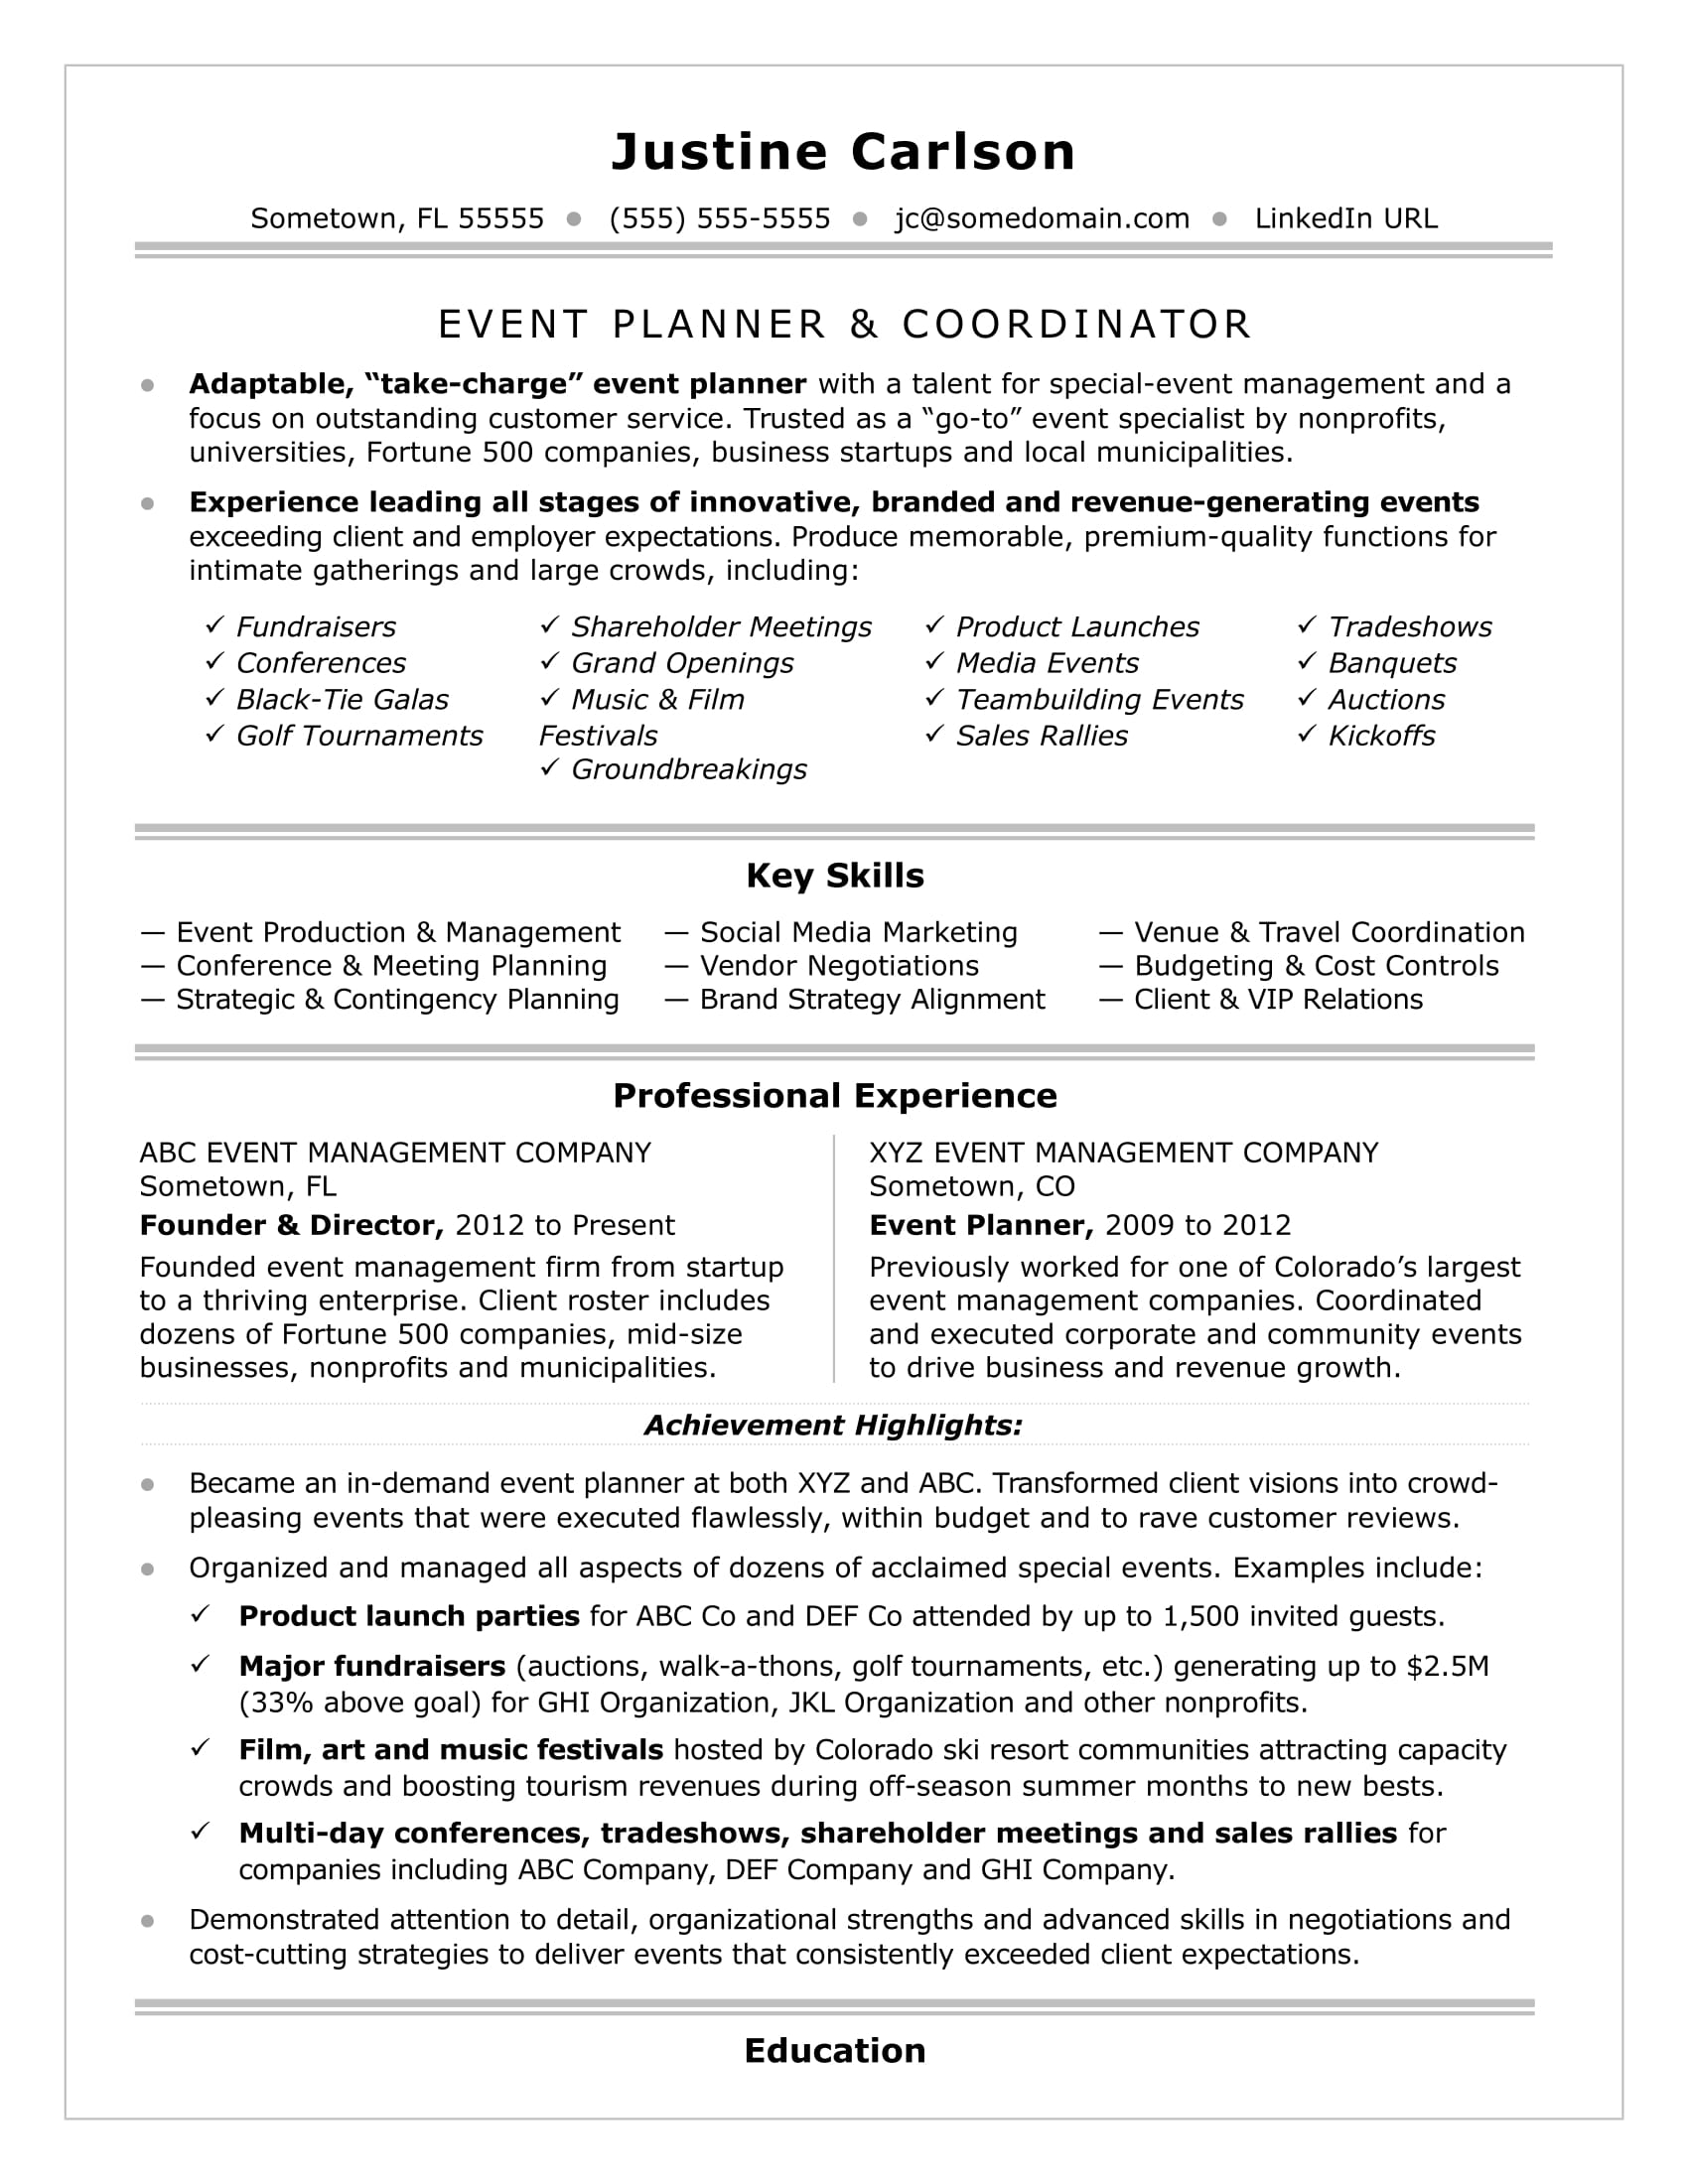 Event planner resume sample idealstalist event planner resume sample spiritdancerdesigns Image collections